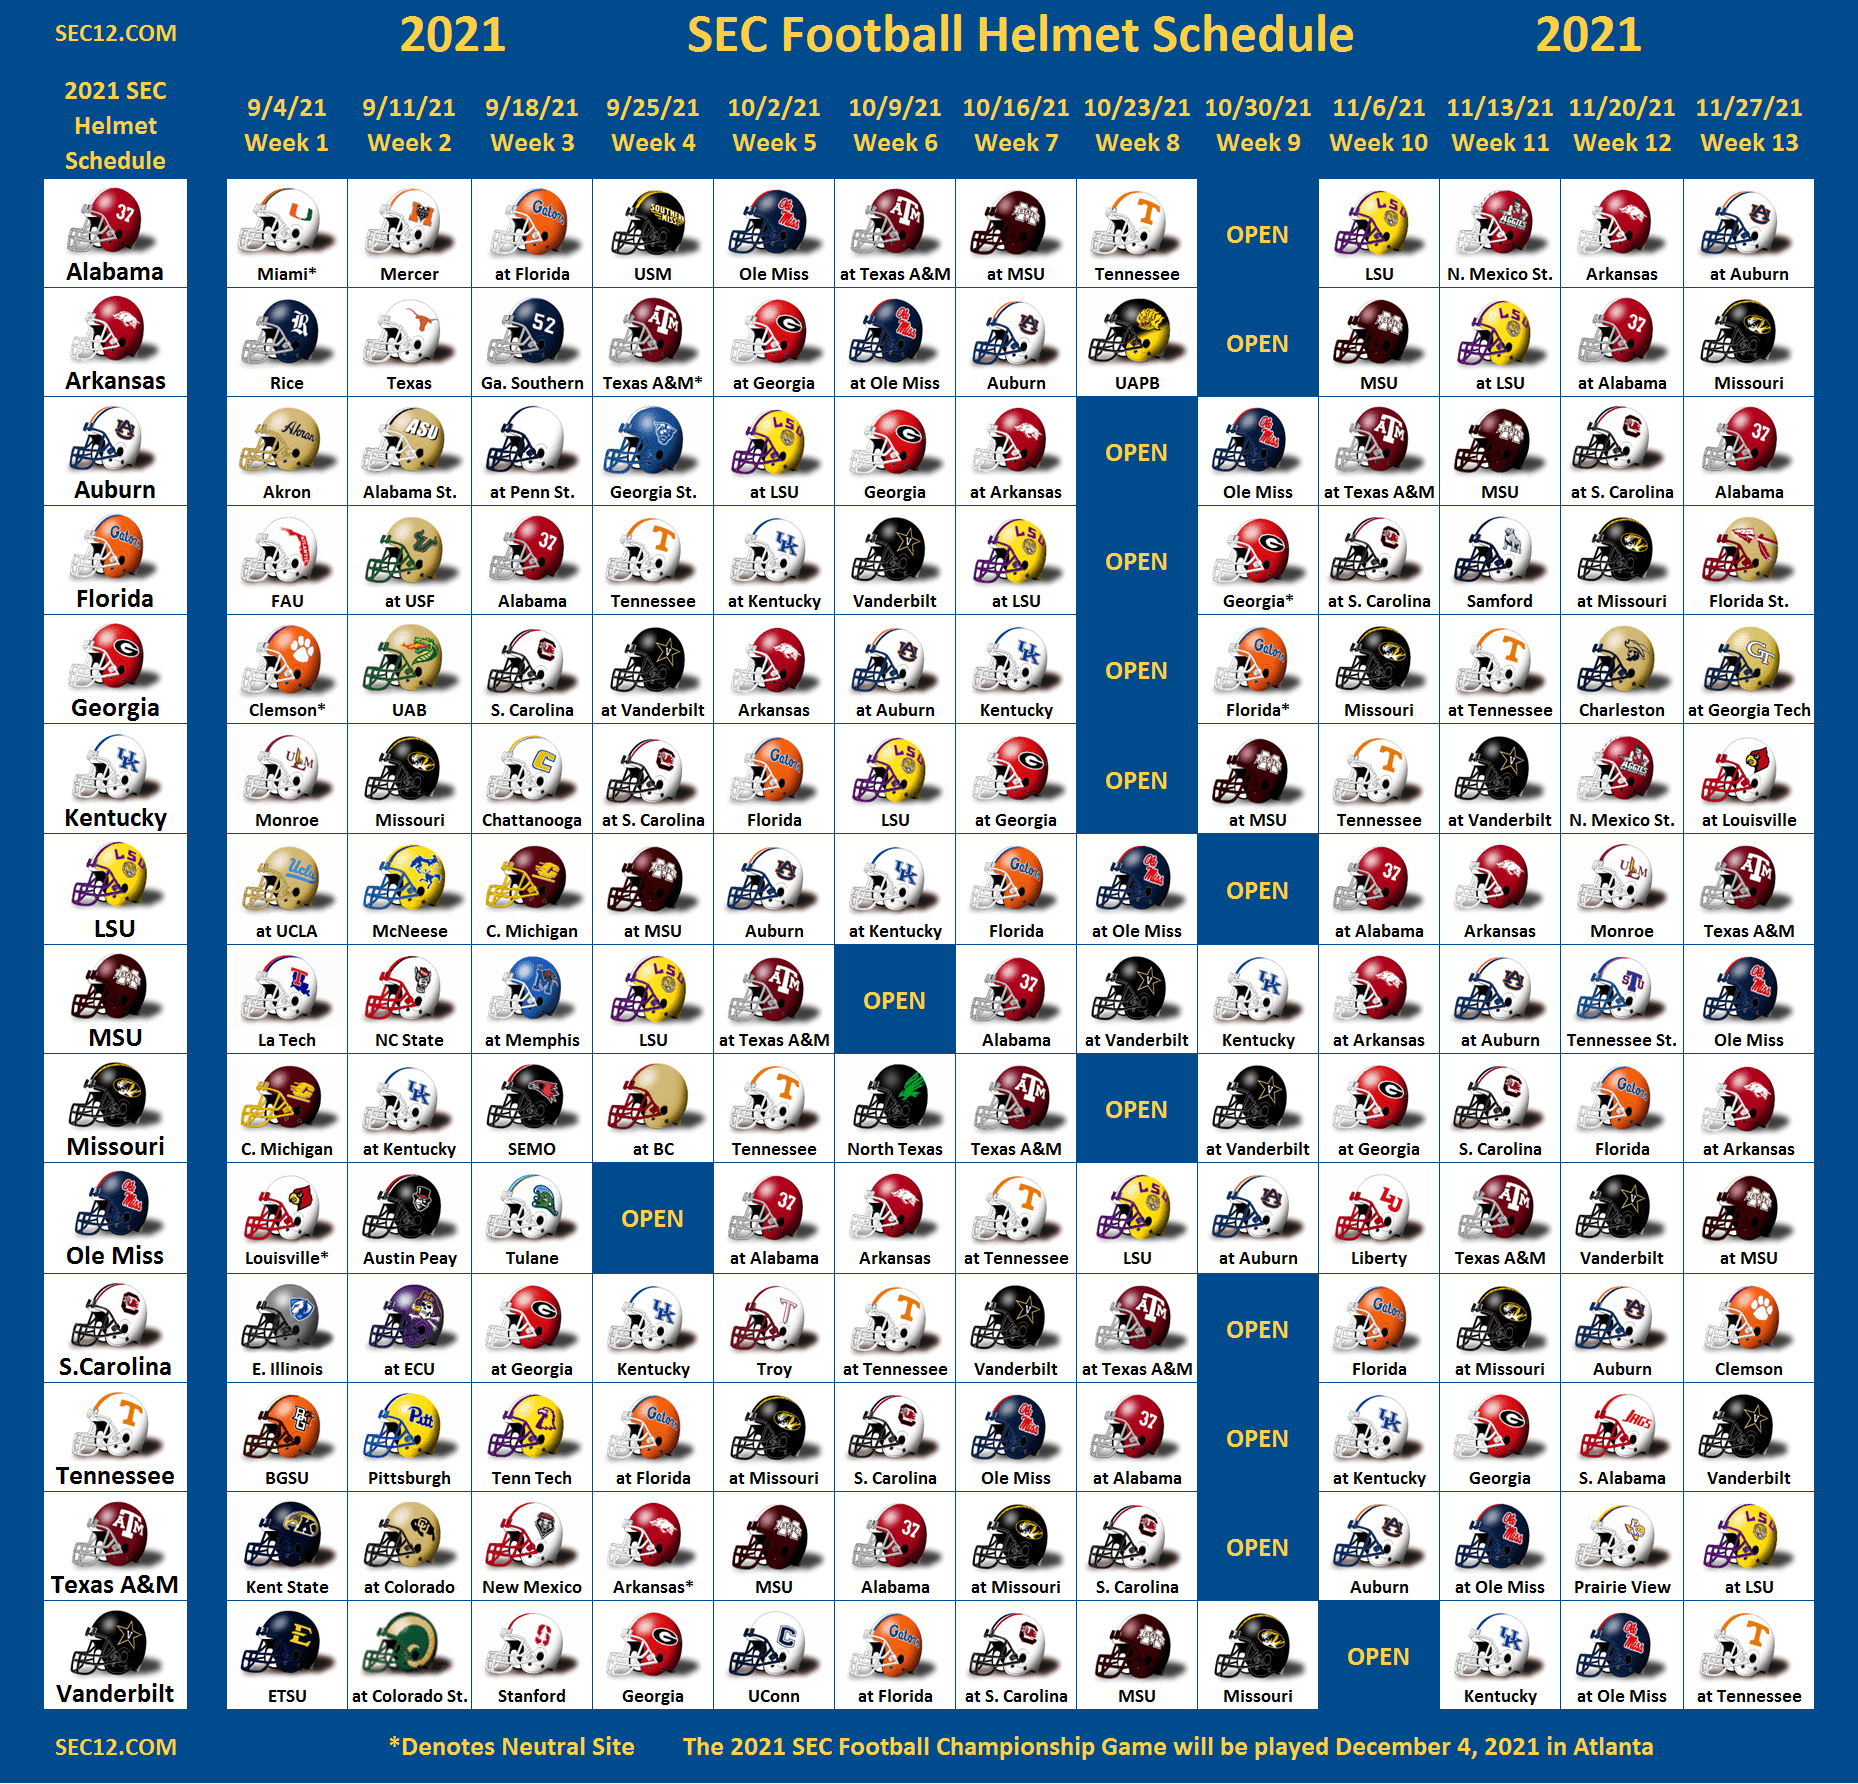 2021 SEC Football Helmet Schedule